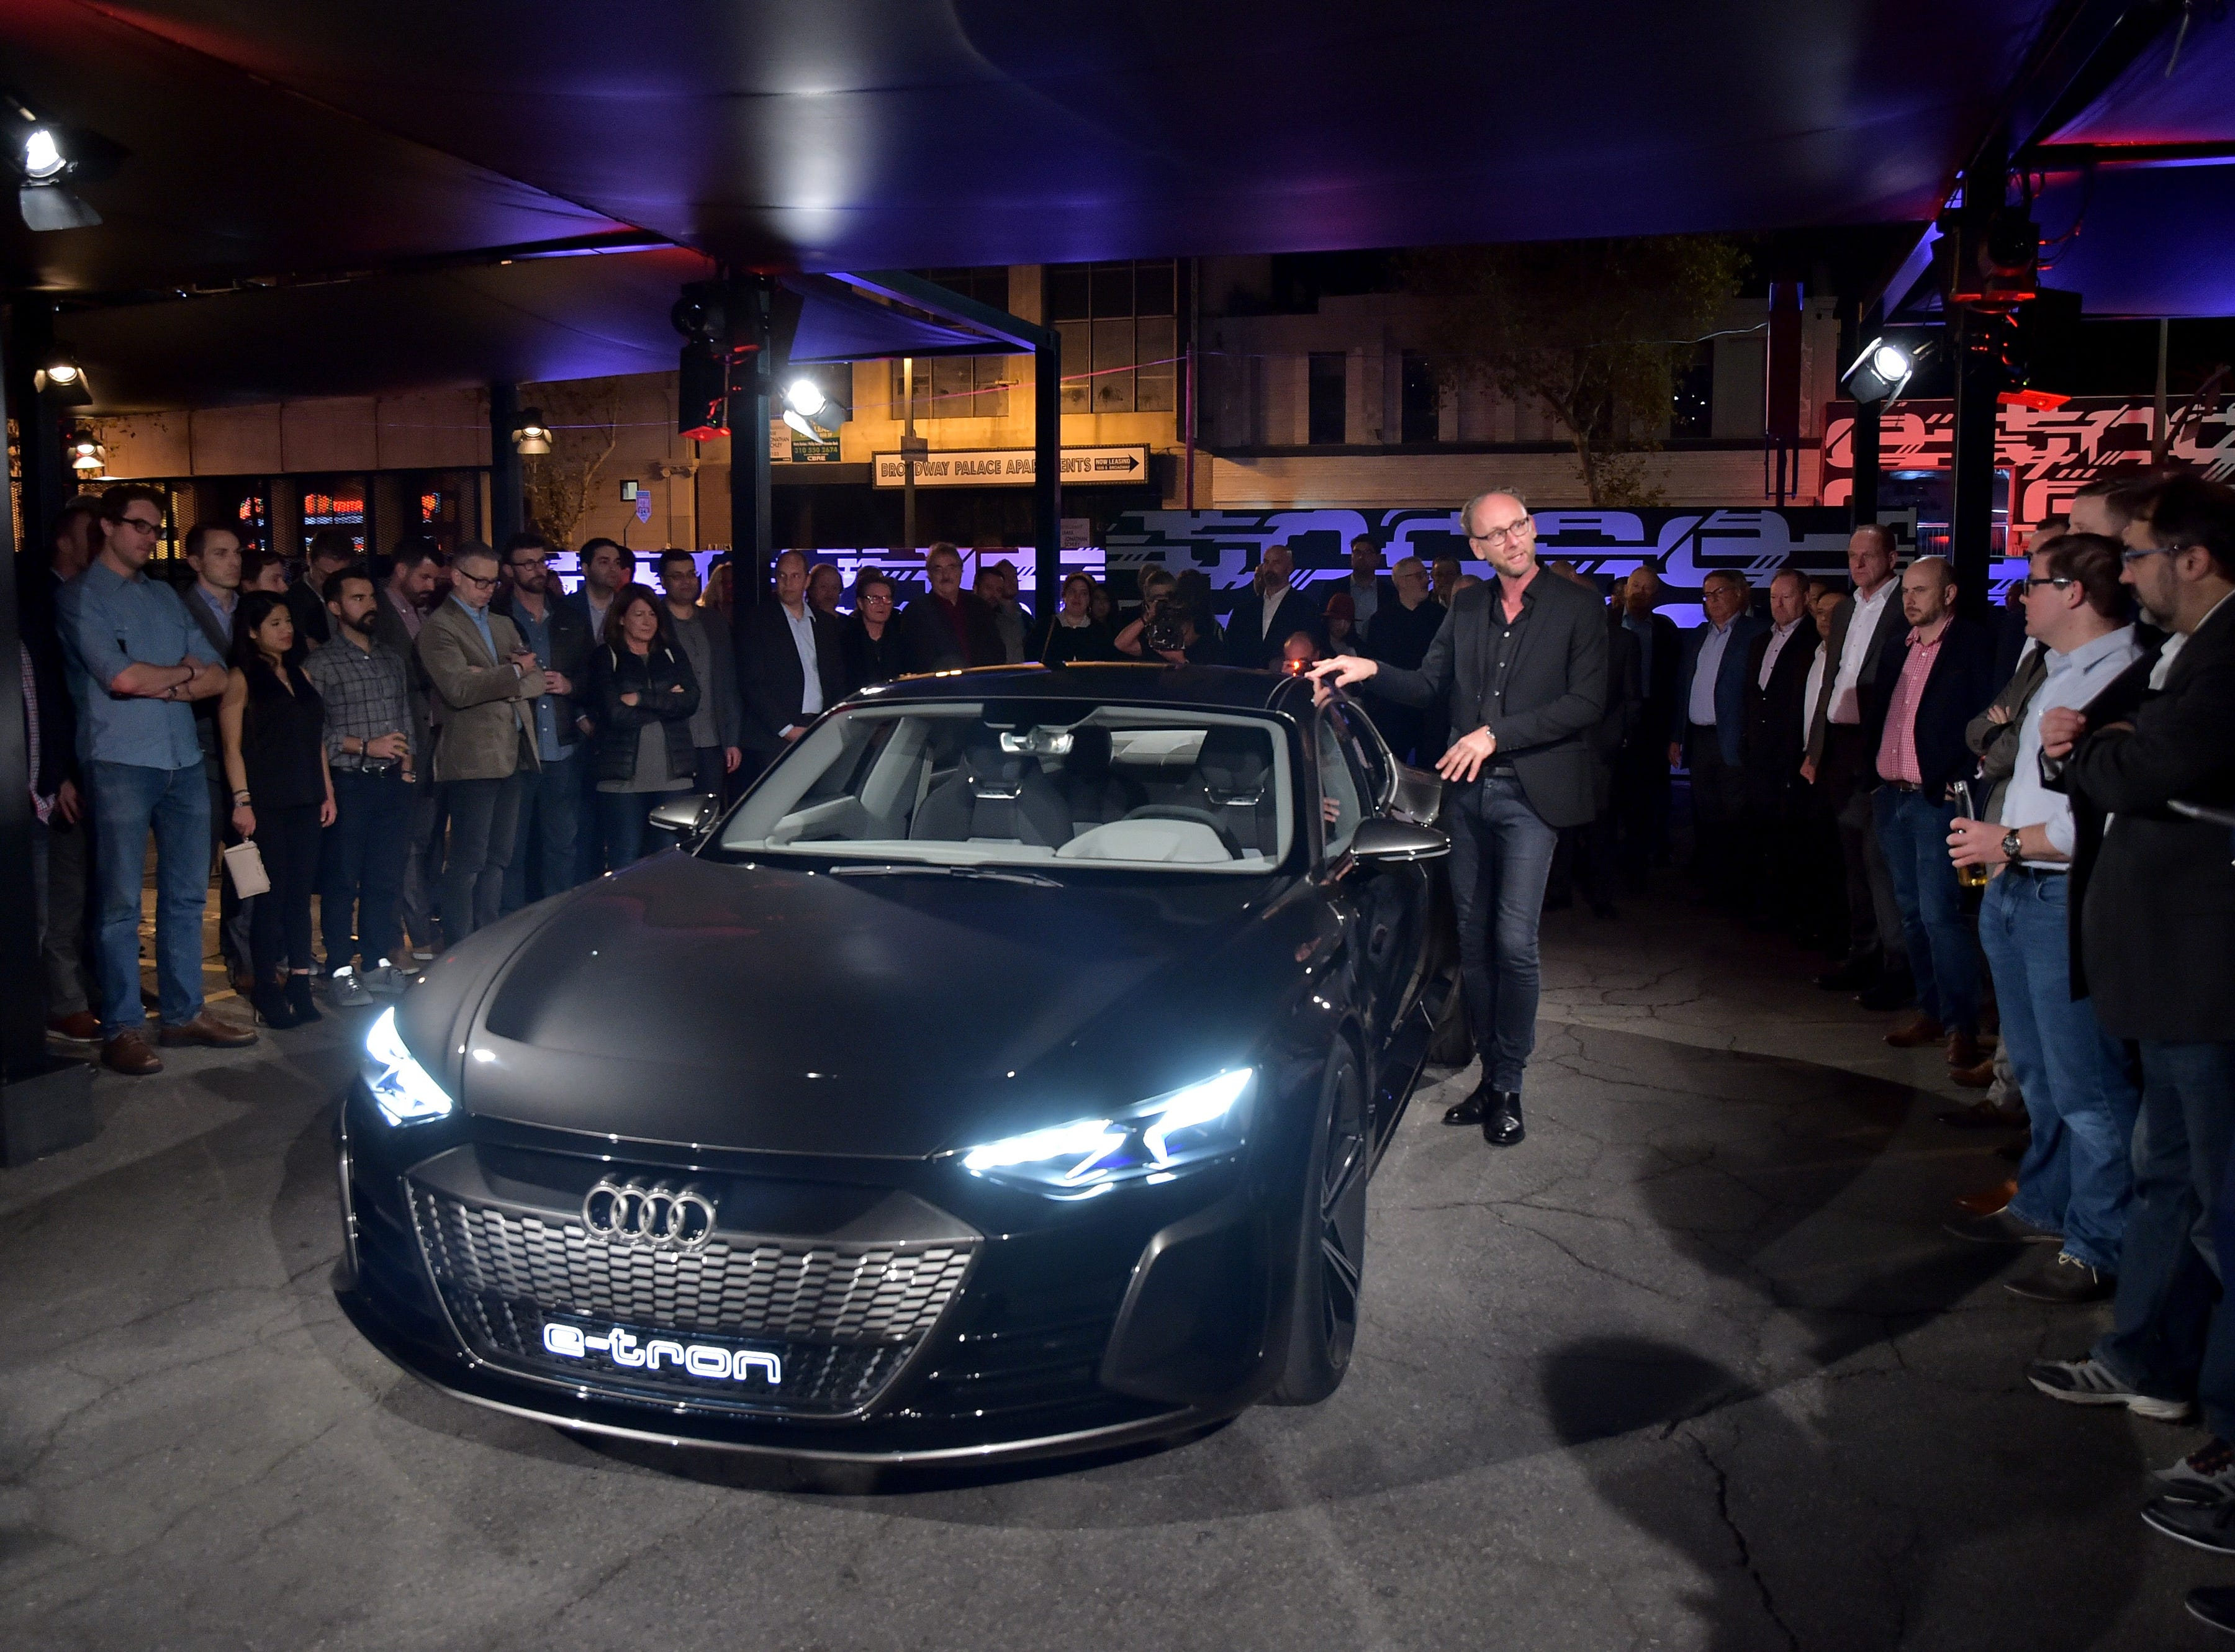 Head of Design of Audi AG, Marc Lichte attends the global reveal of the Audi e-tron GT concept in Los Angeles on Monday, November 26th, 2018.